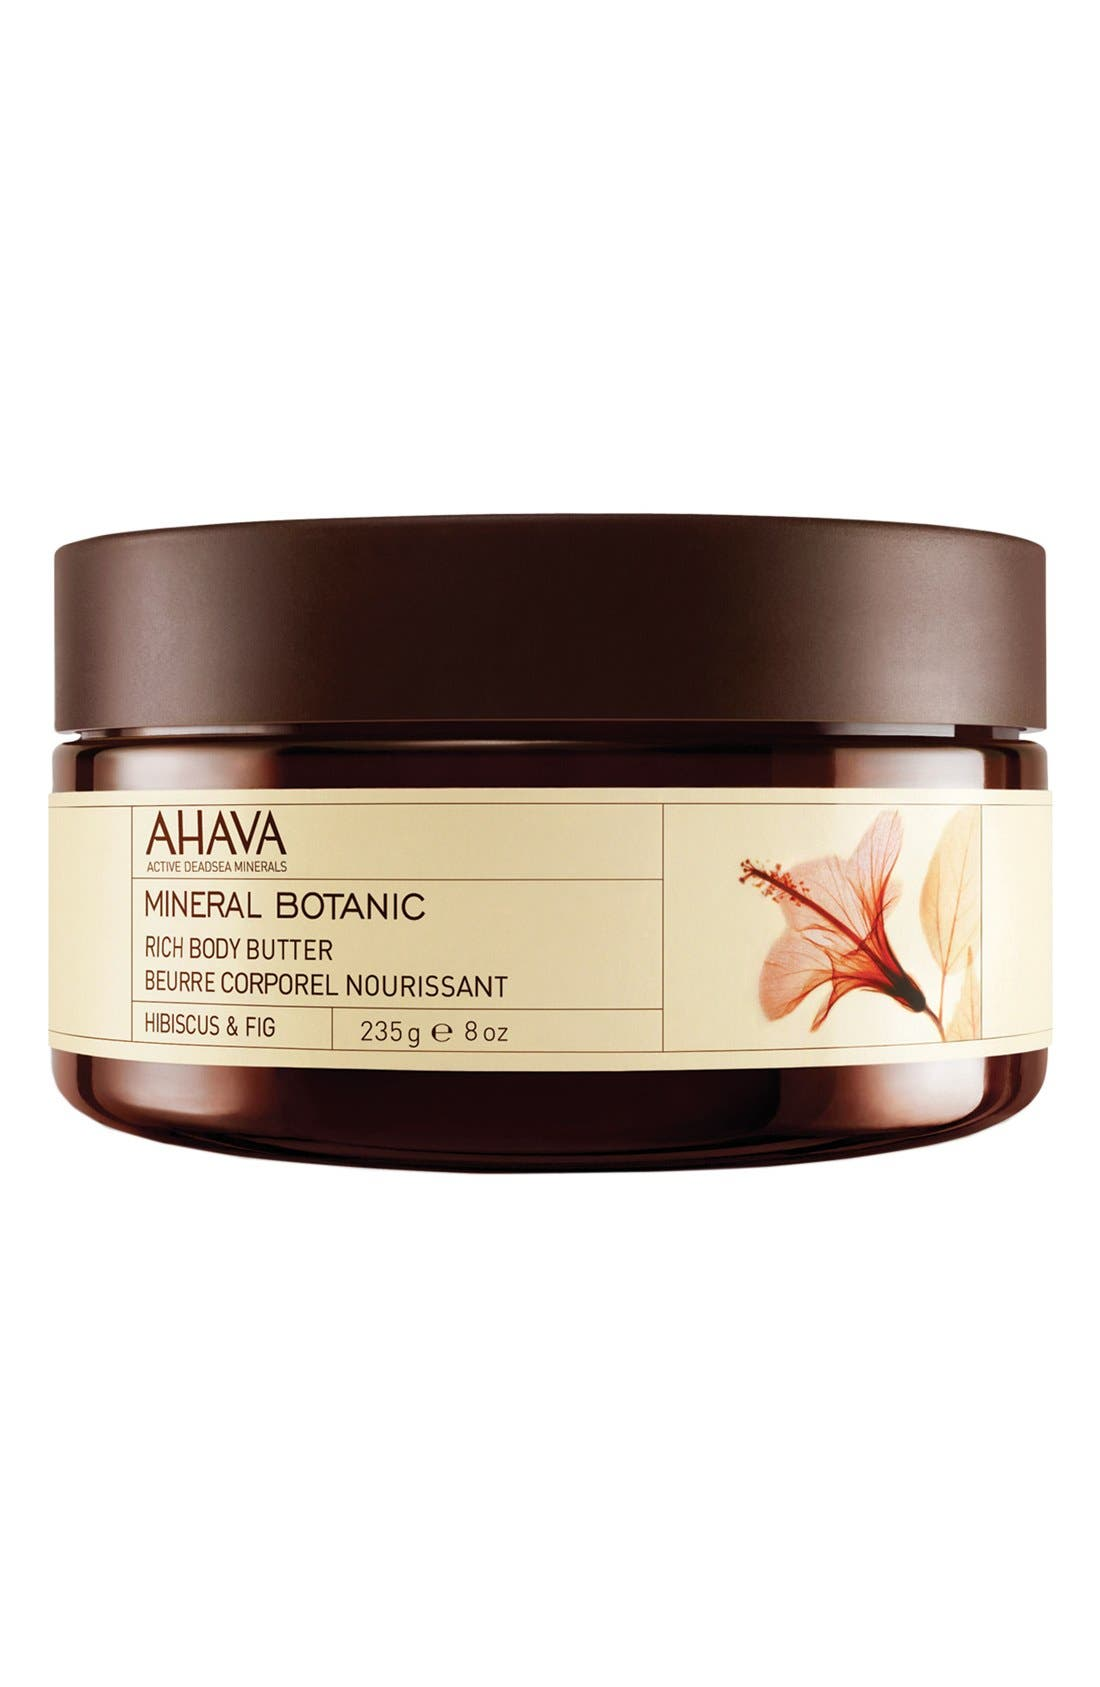 'Hibiscus & Fig' Mineral Botanic Rich Body Butter,                             Main thumbnail 1, color,